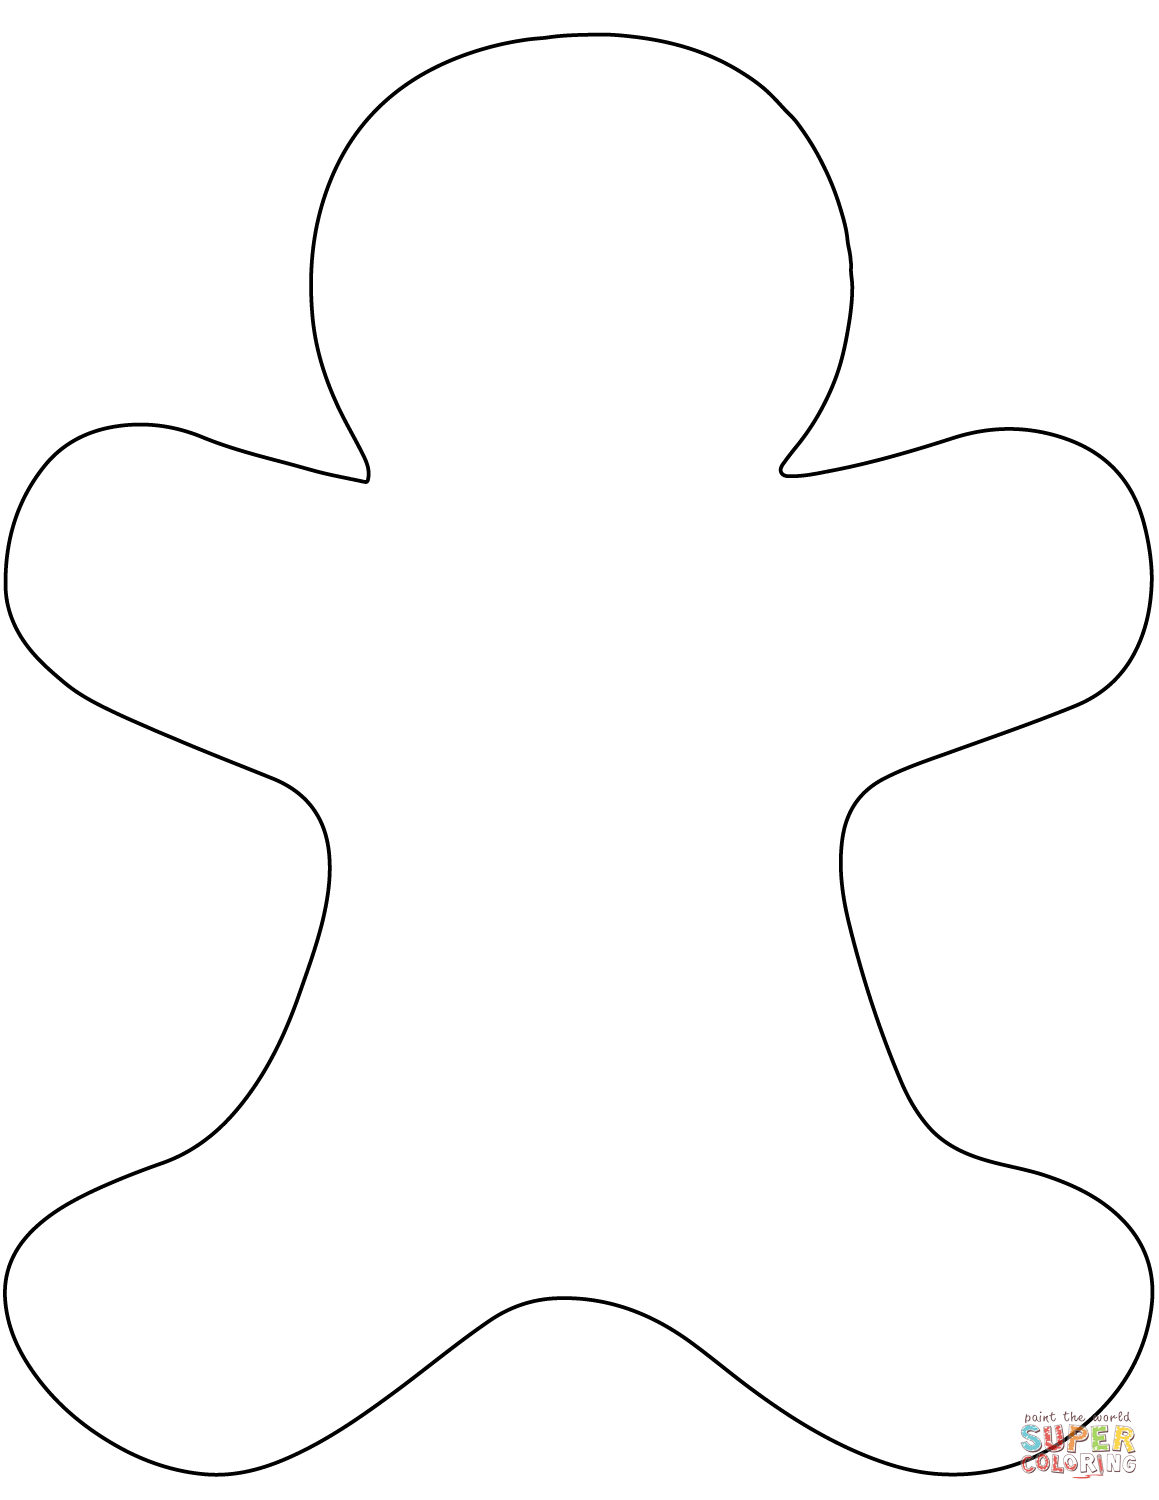 Blank Gingerbread Man Coloring Page Free Printable Coloring Pages